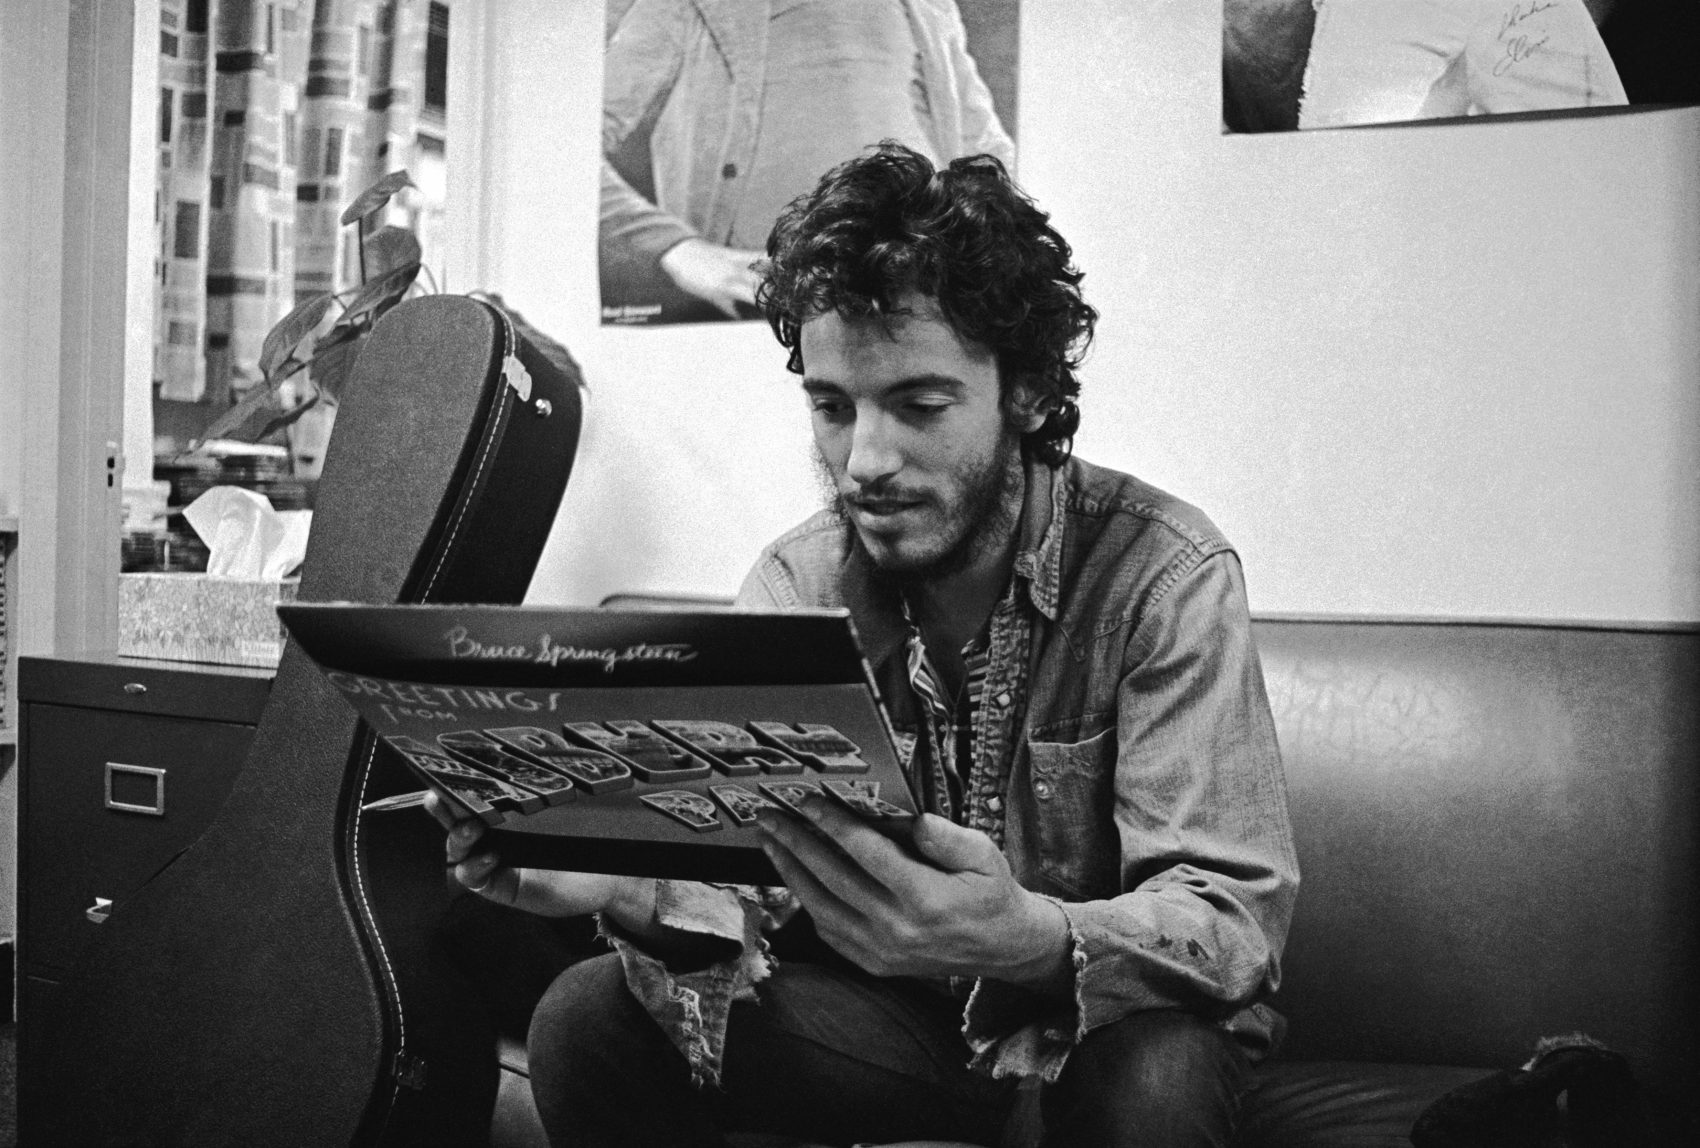 Bruce Springsteen looking at his first album for the first time. (Courtesy Art Maillet)